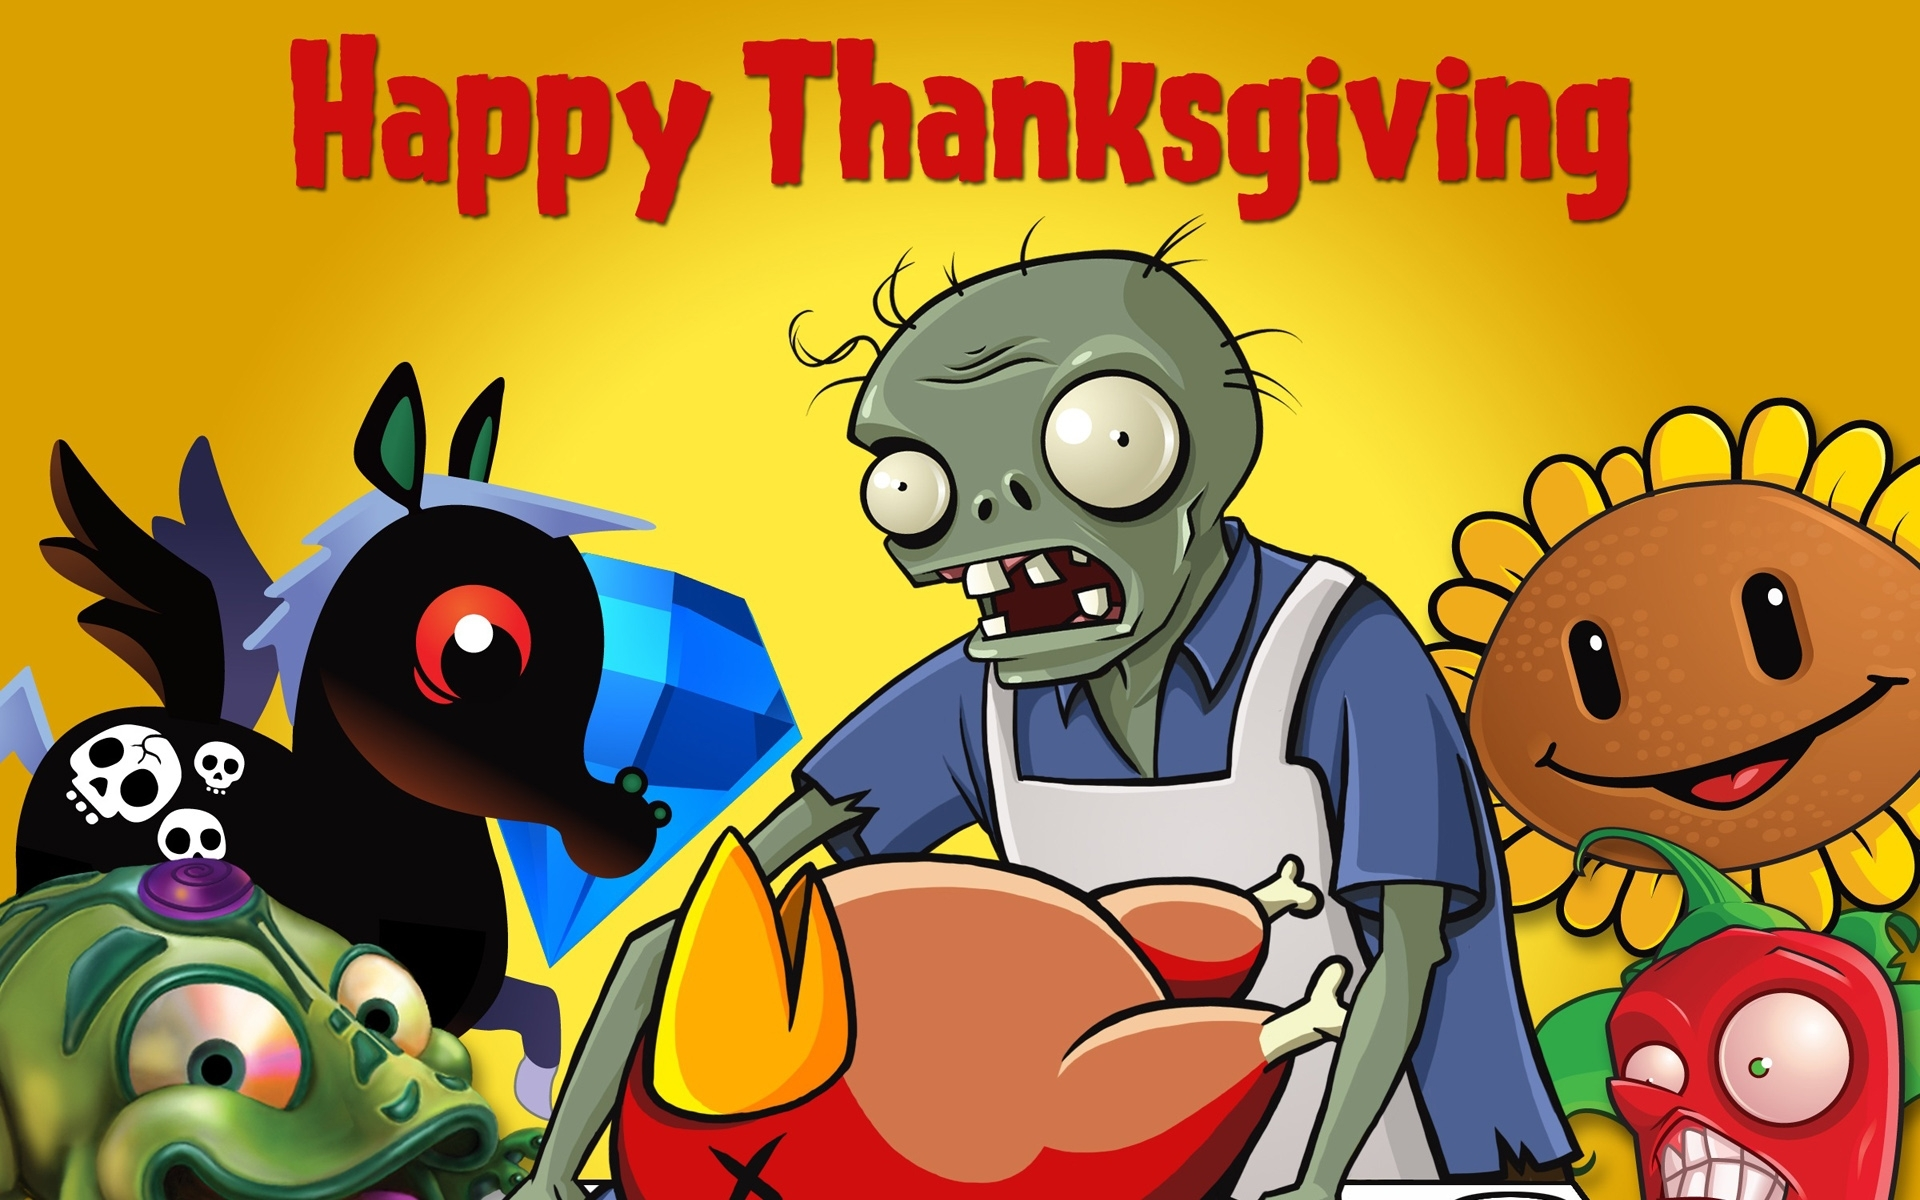 Holiday - Thanksgiving  - Plants Vs. Zombies - Game - Video Game Wallpaper